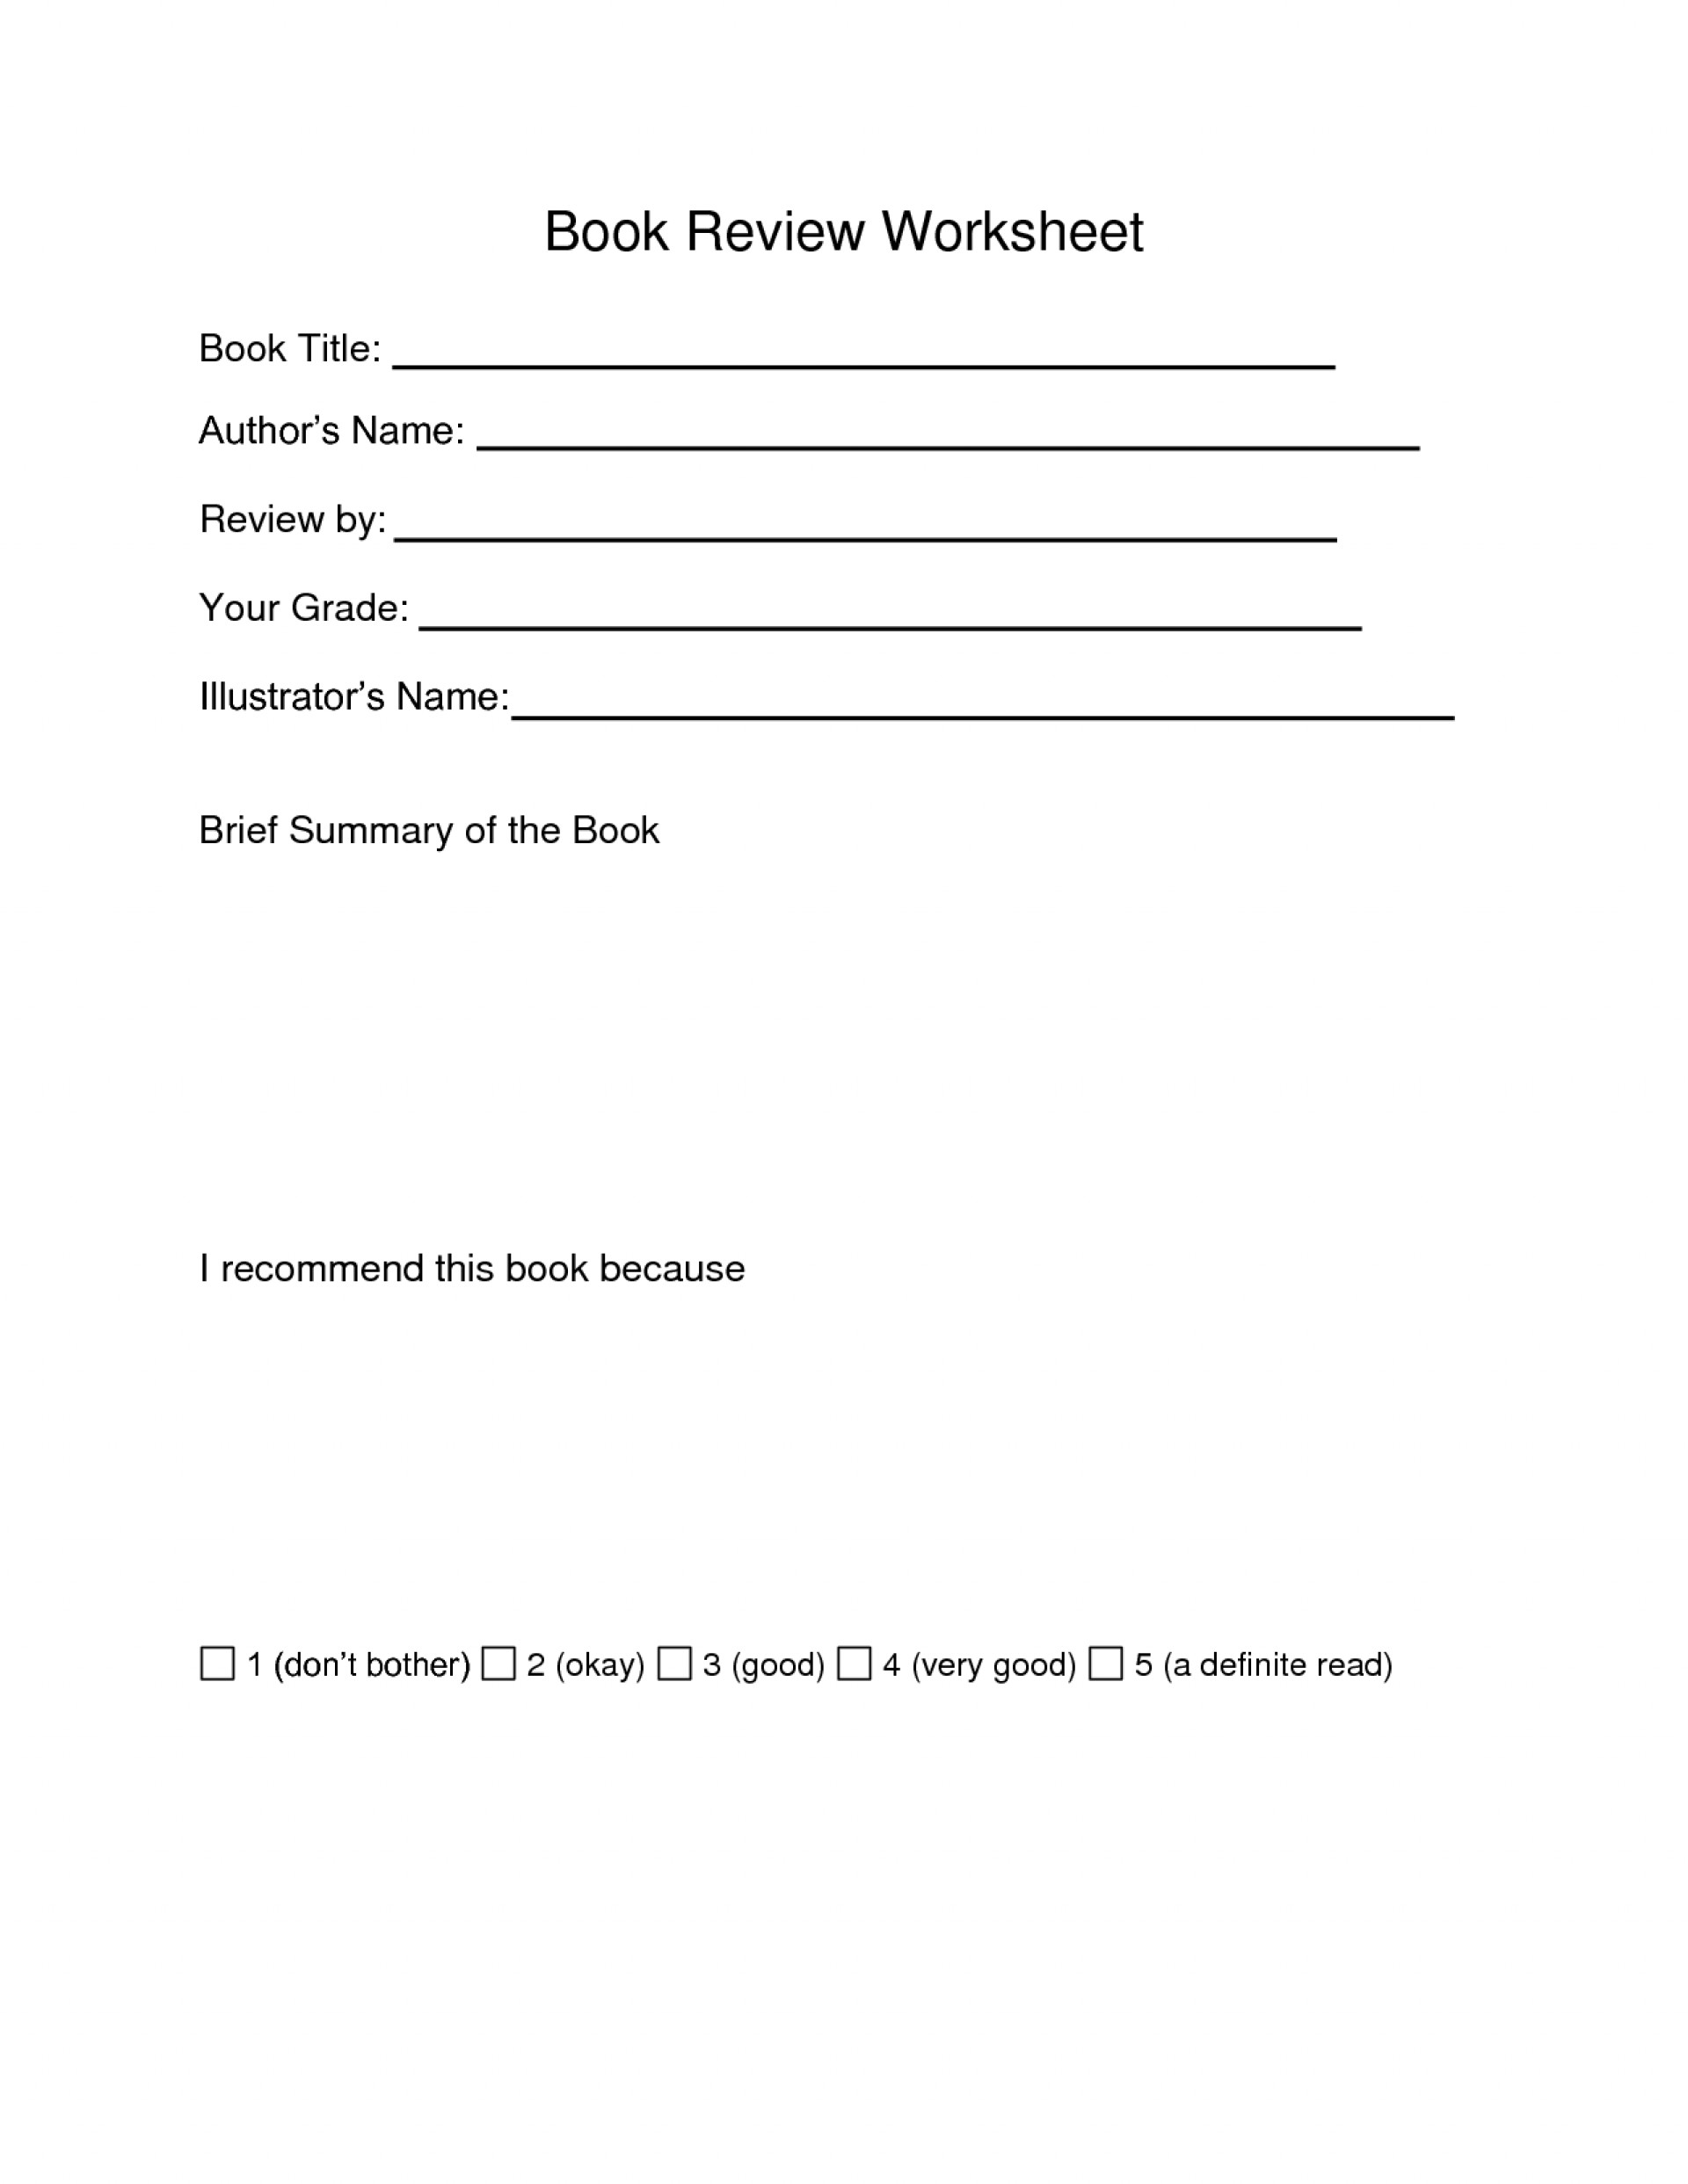 018 Firstpage S002191181700105xa Book Review Essay Thatsnotus